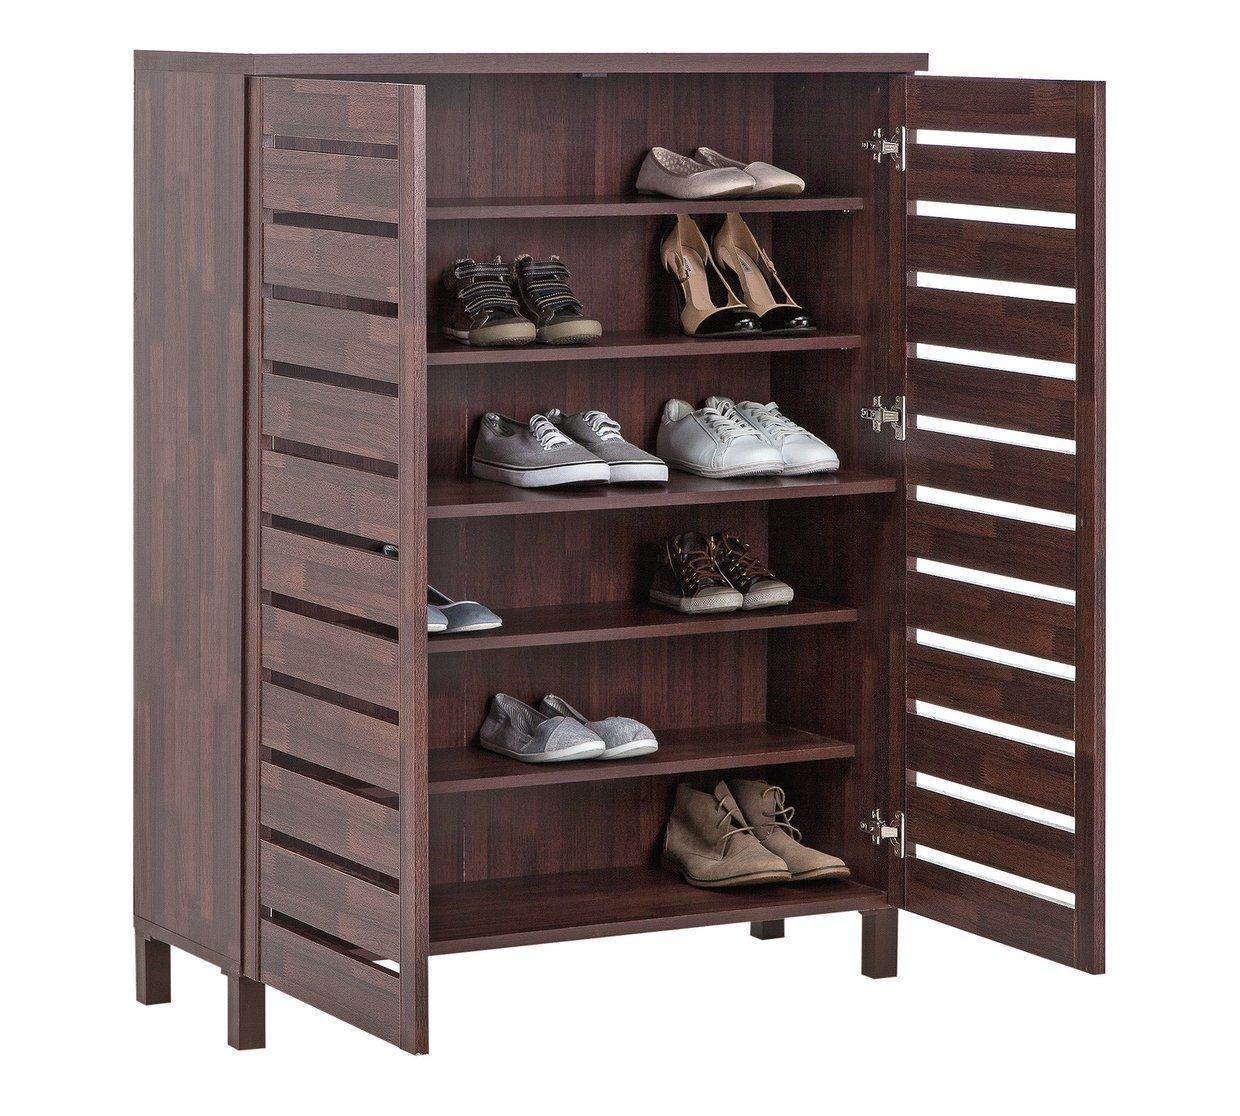 Home Dsgn Designing Home Inspiration Shoe Cabinet Design Shoe Storage Cabinet Closet Shoe Storage